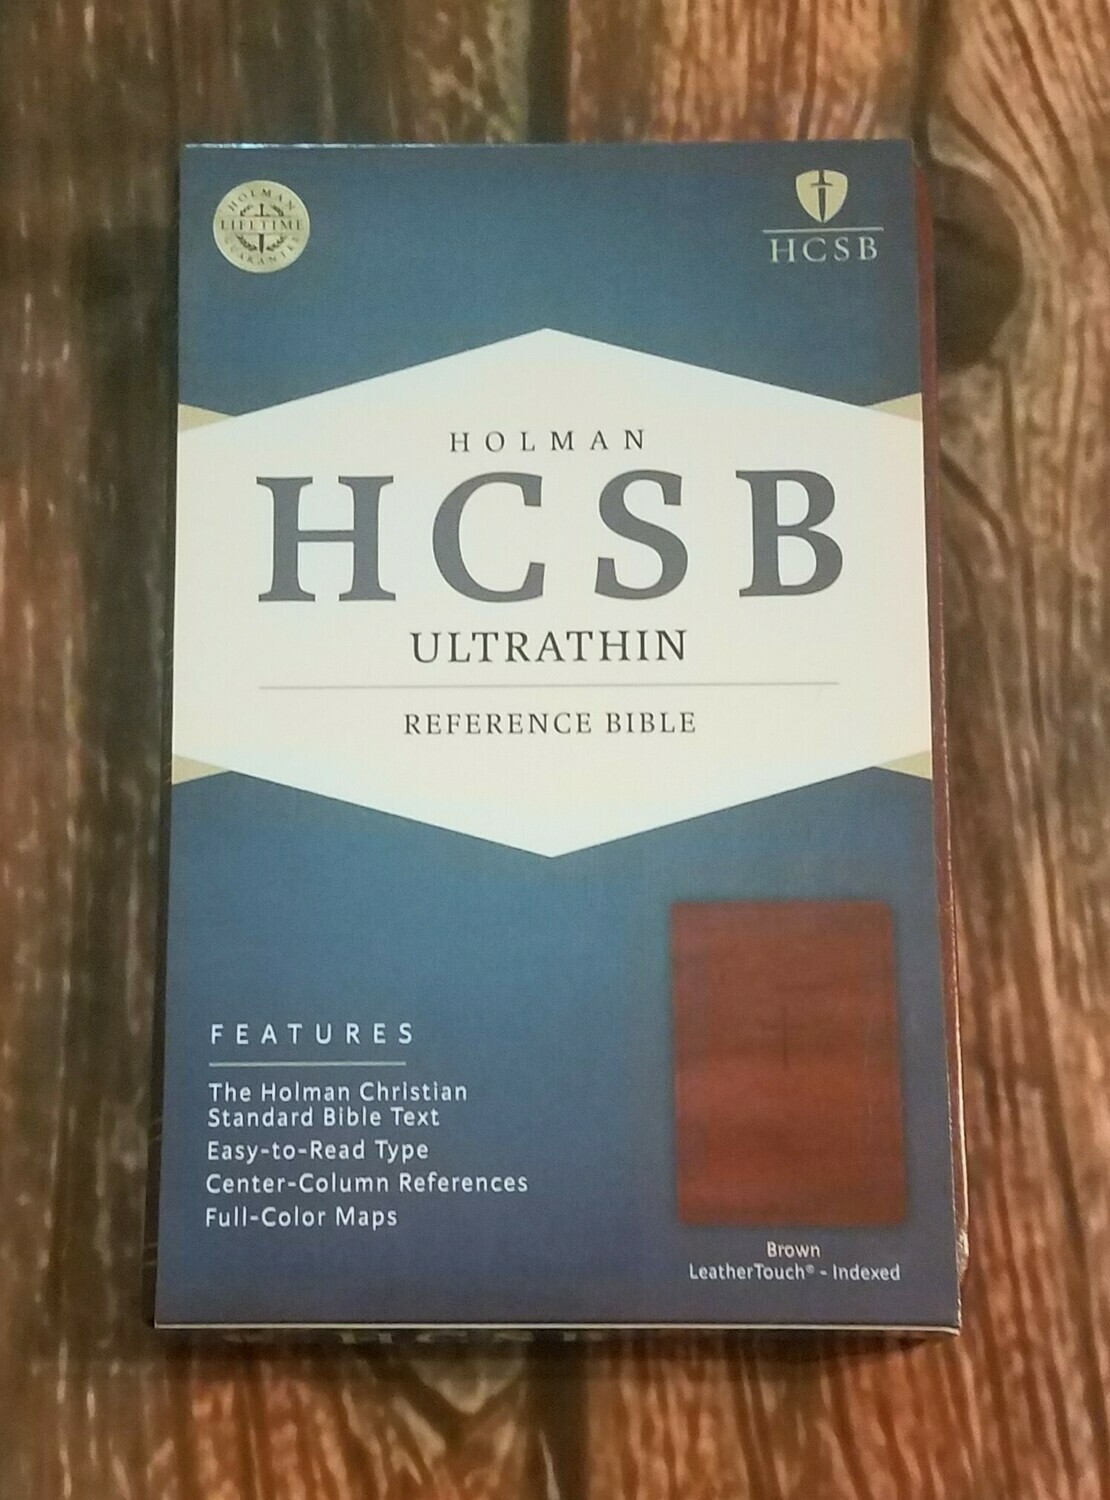 HCSB Holman Ultrathin Reference Bible Brown Leather with Cross